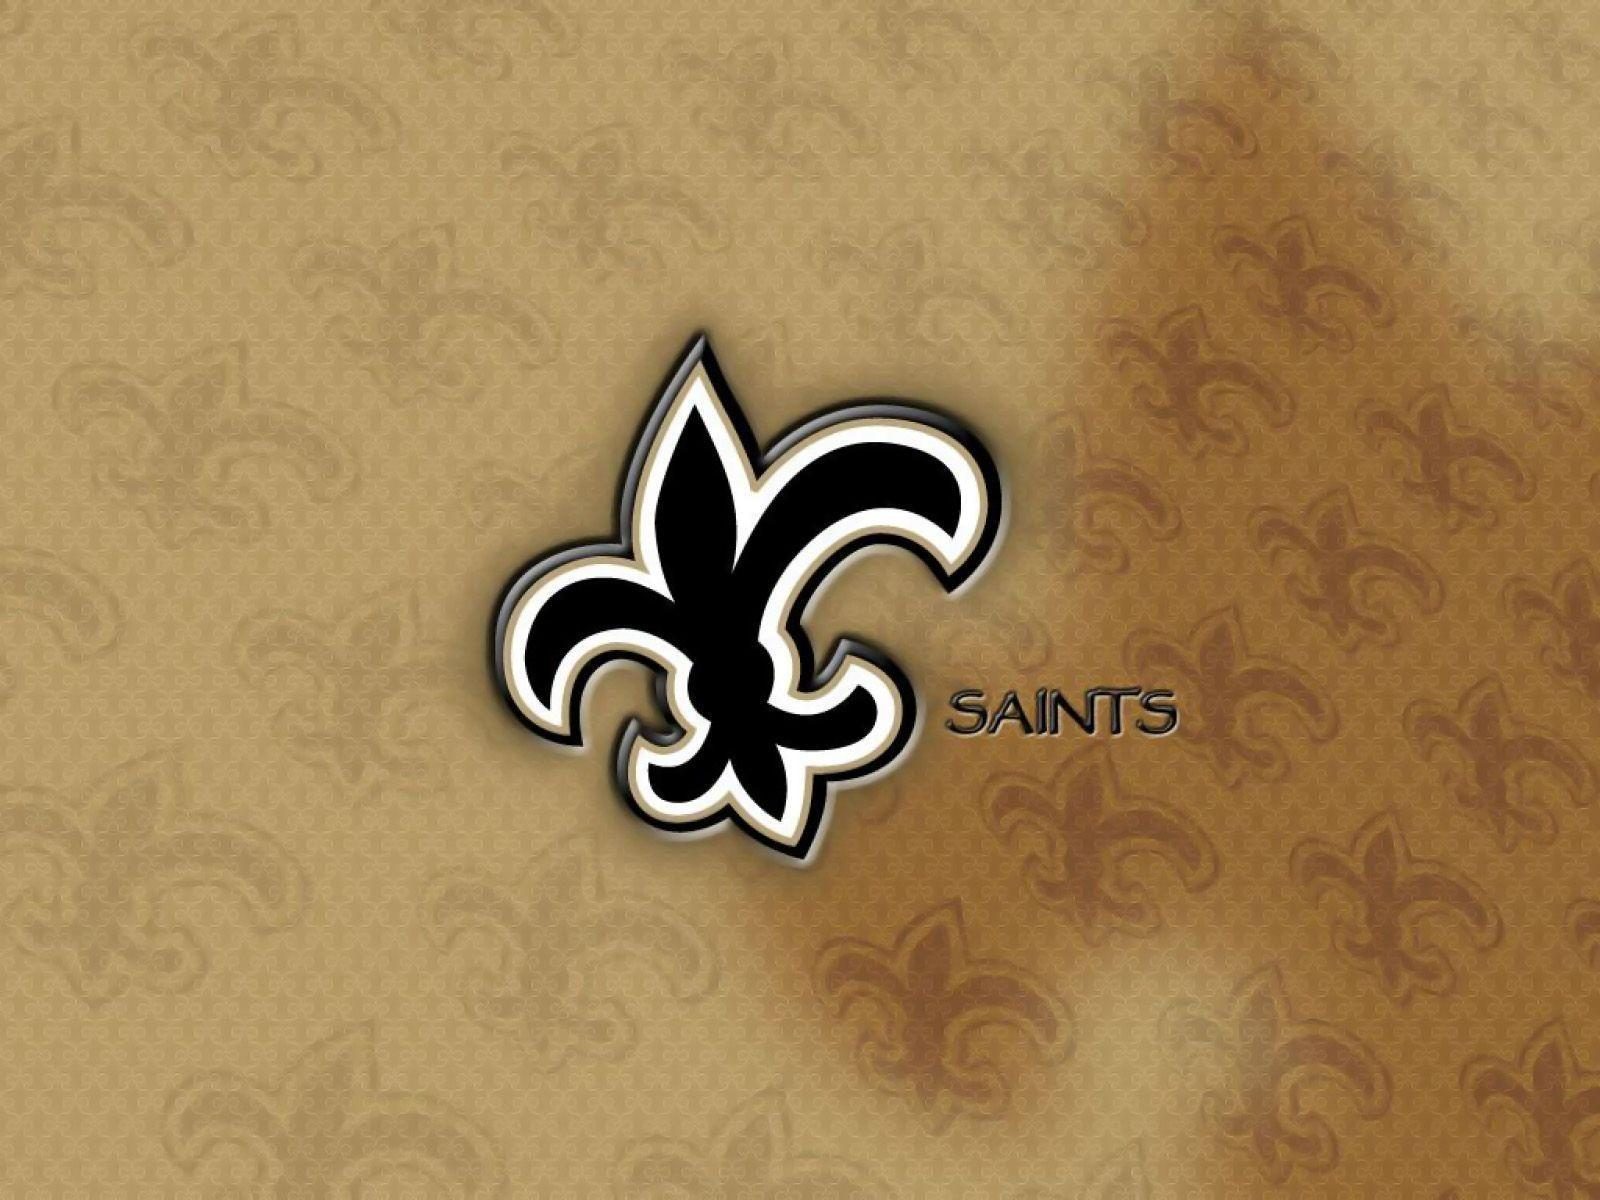 New Orleans Saints wallpapers wallpapers